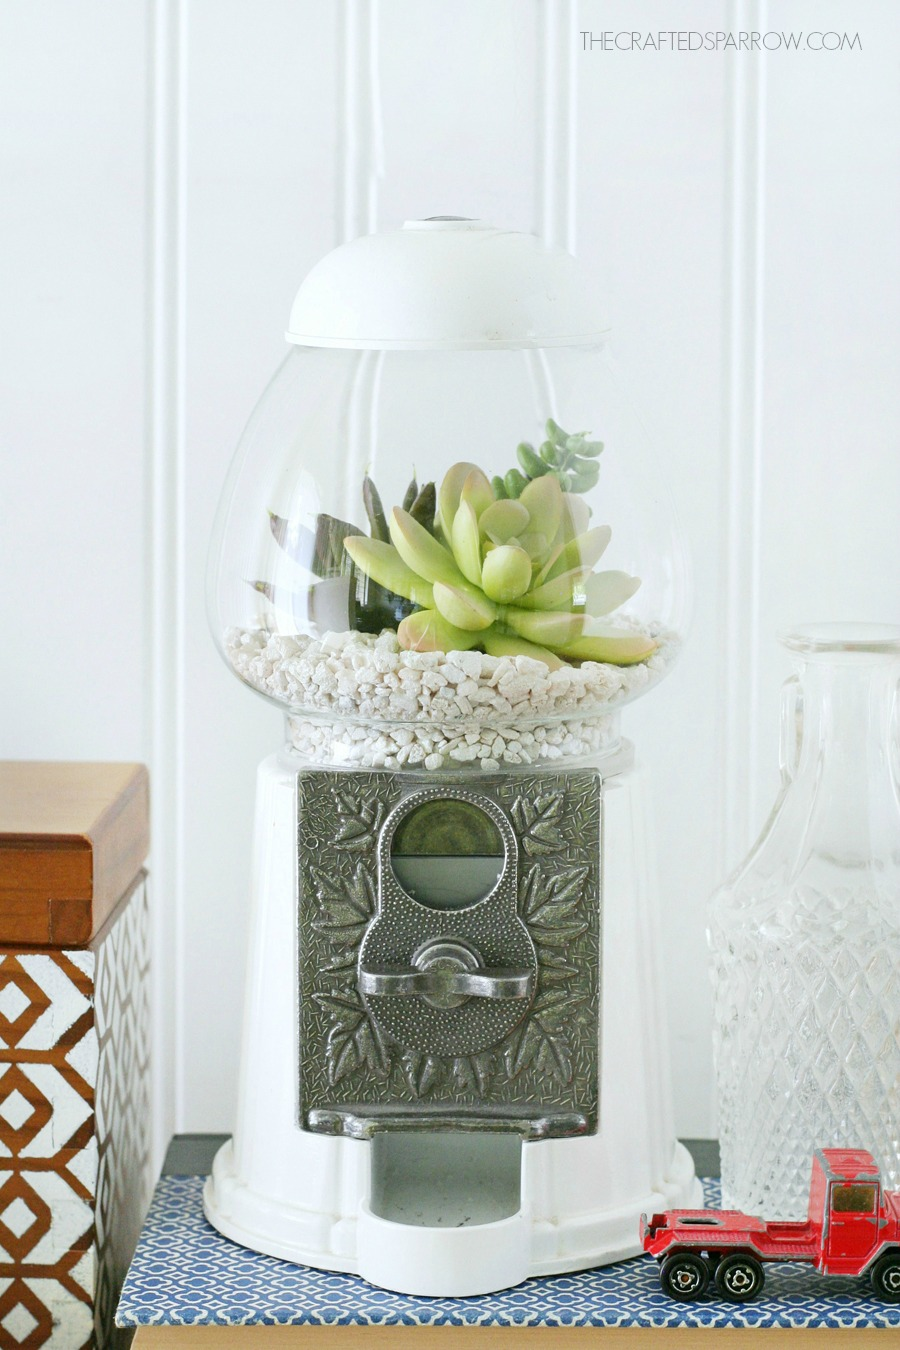 Gumball-Machine-Succulent-Planter-7